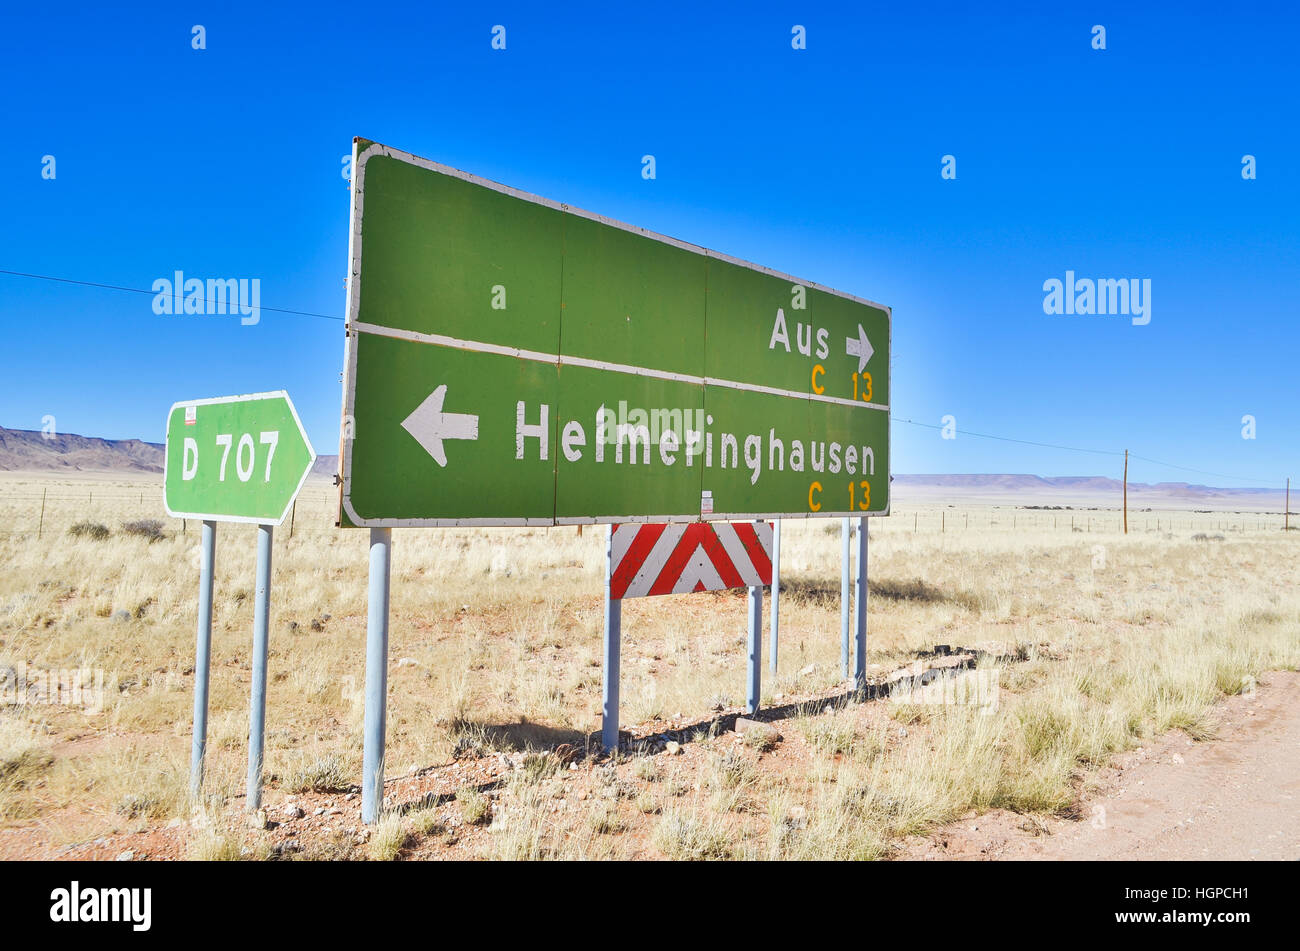 Road sign between Aus and Helmeringhausen, Namibia - Stock Image